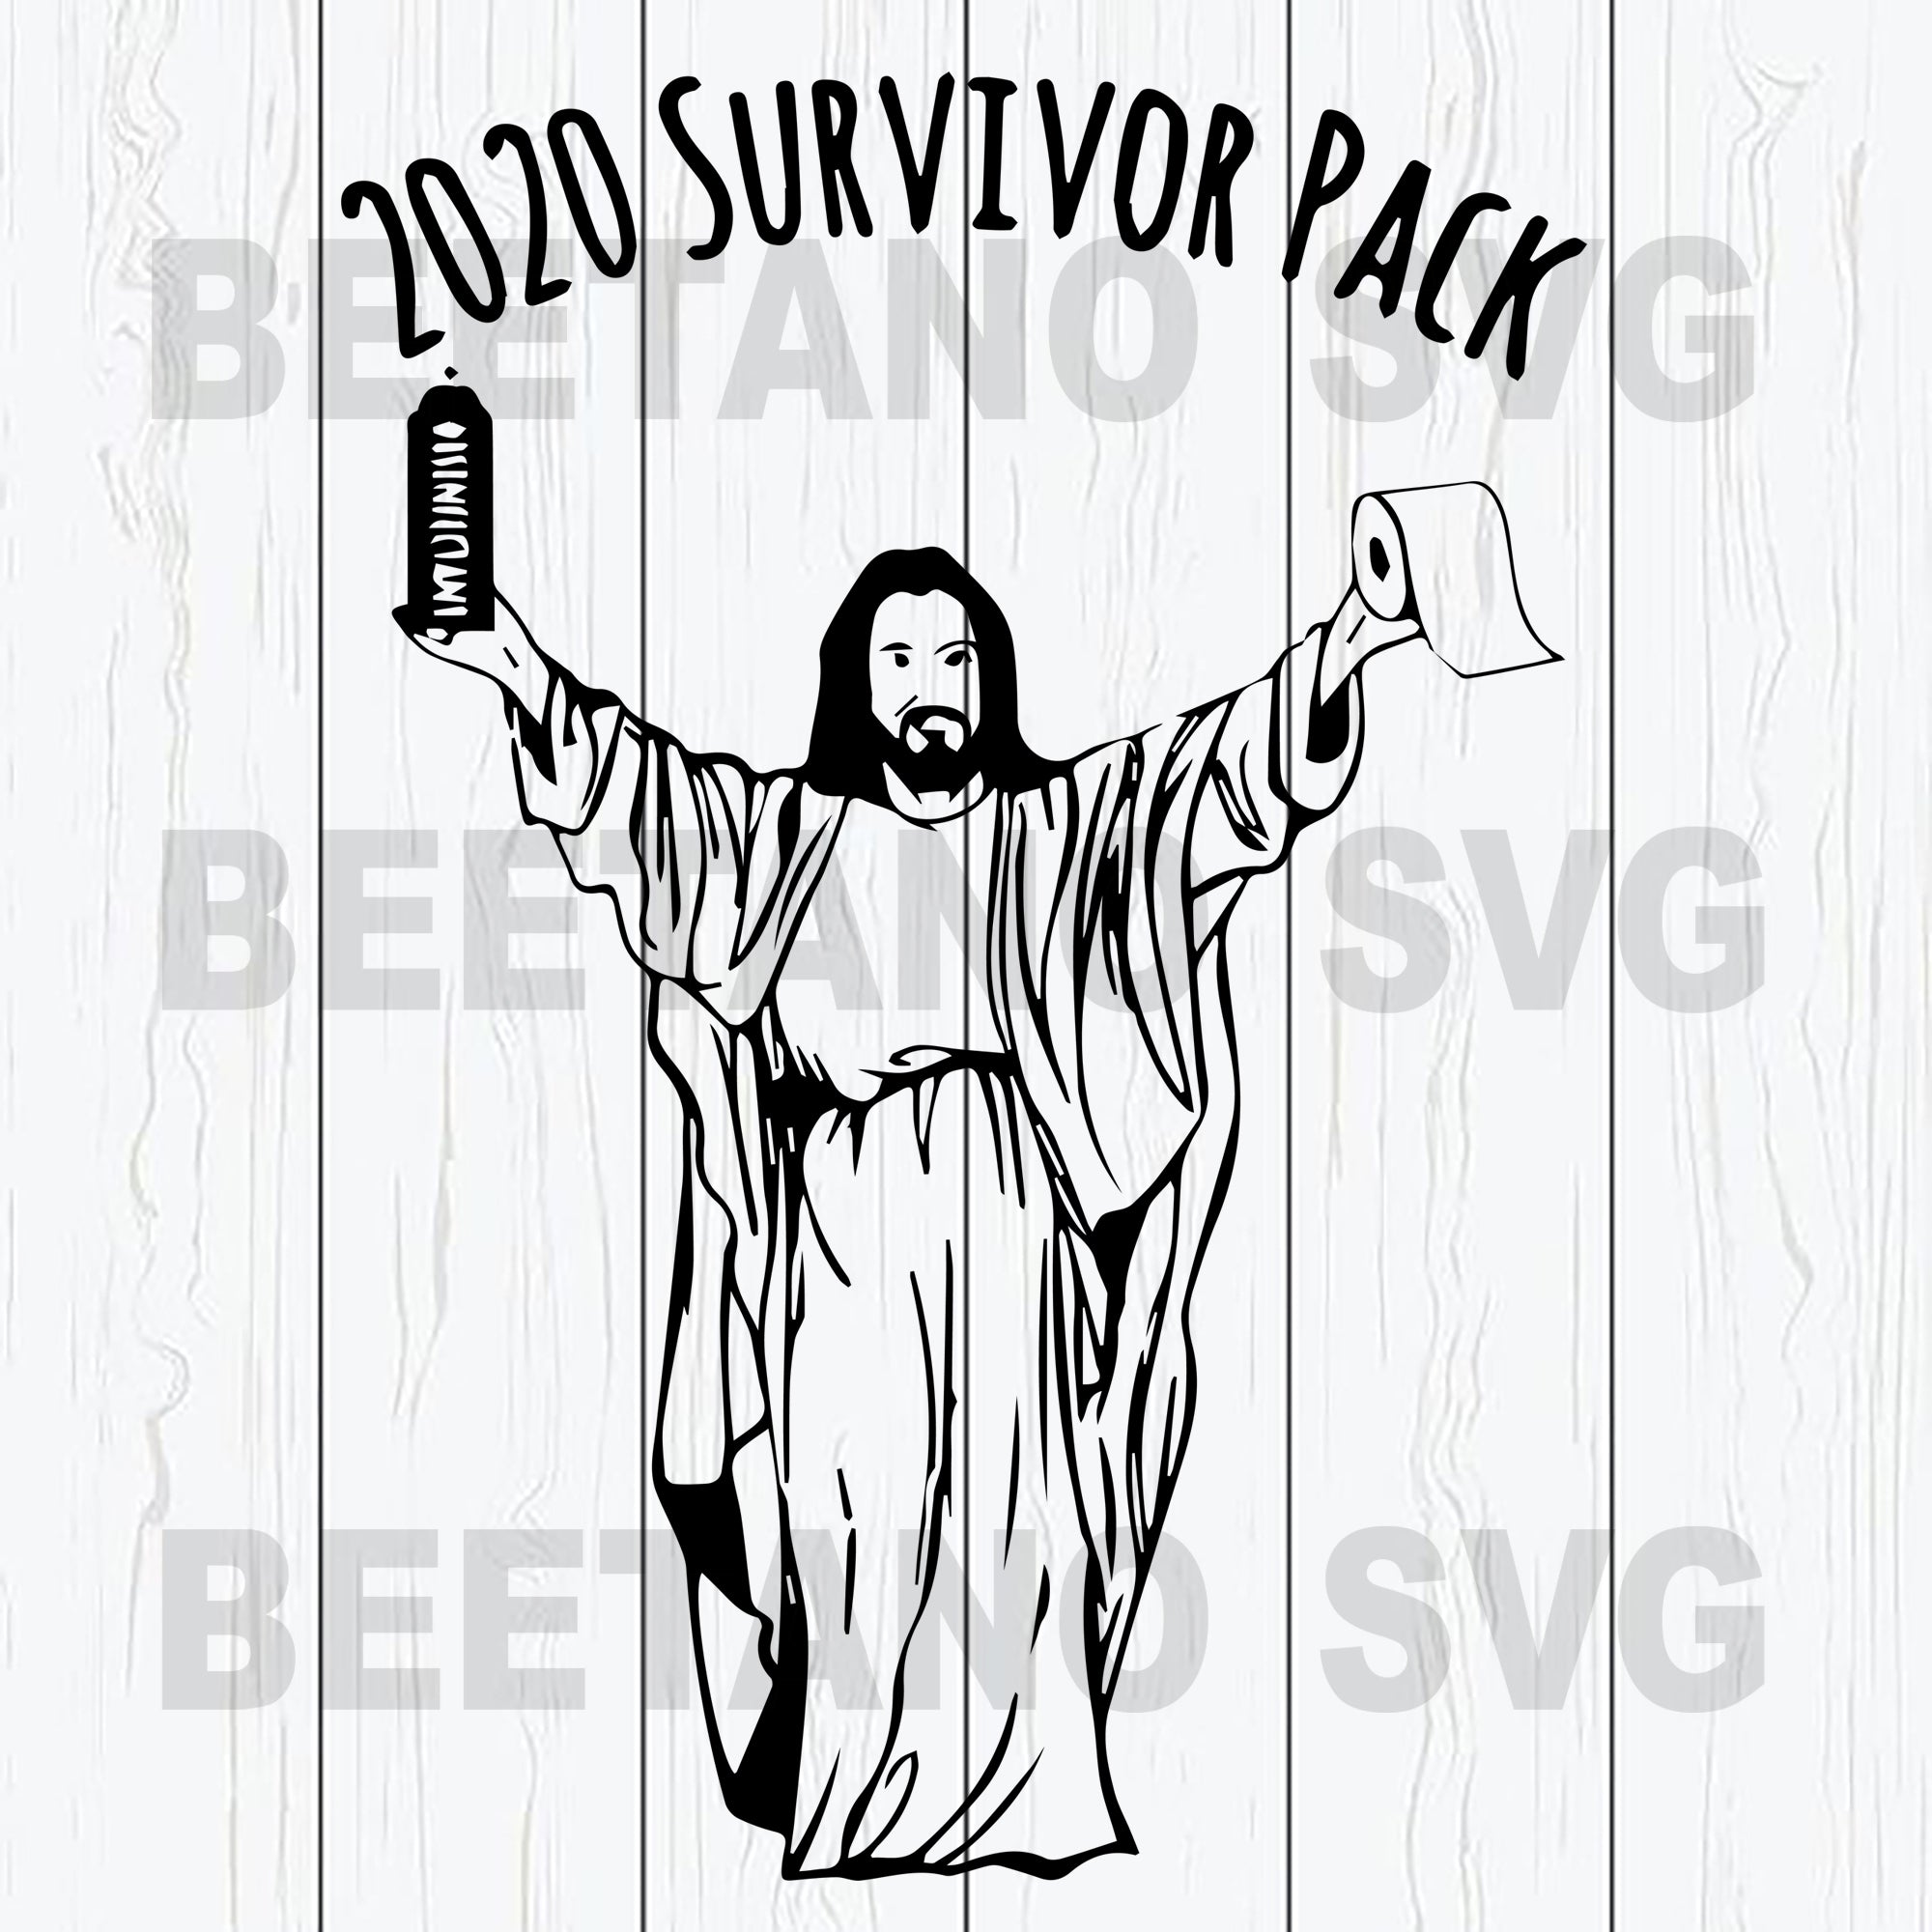 Jesus 2020 Survivor Pack Svg Files, 2020 Jesus Svg, Jesus Svg Files, Jesus Files For Cricut